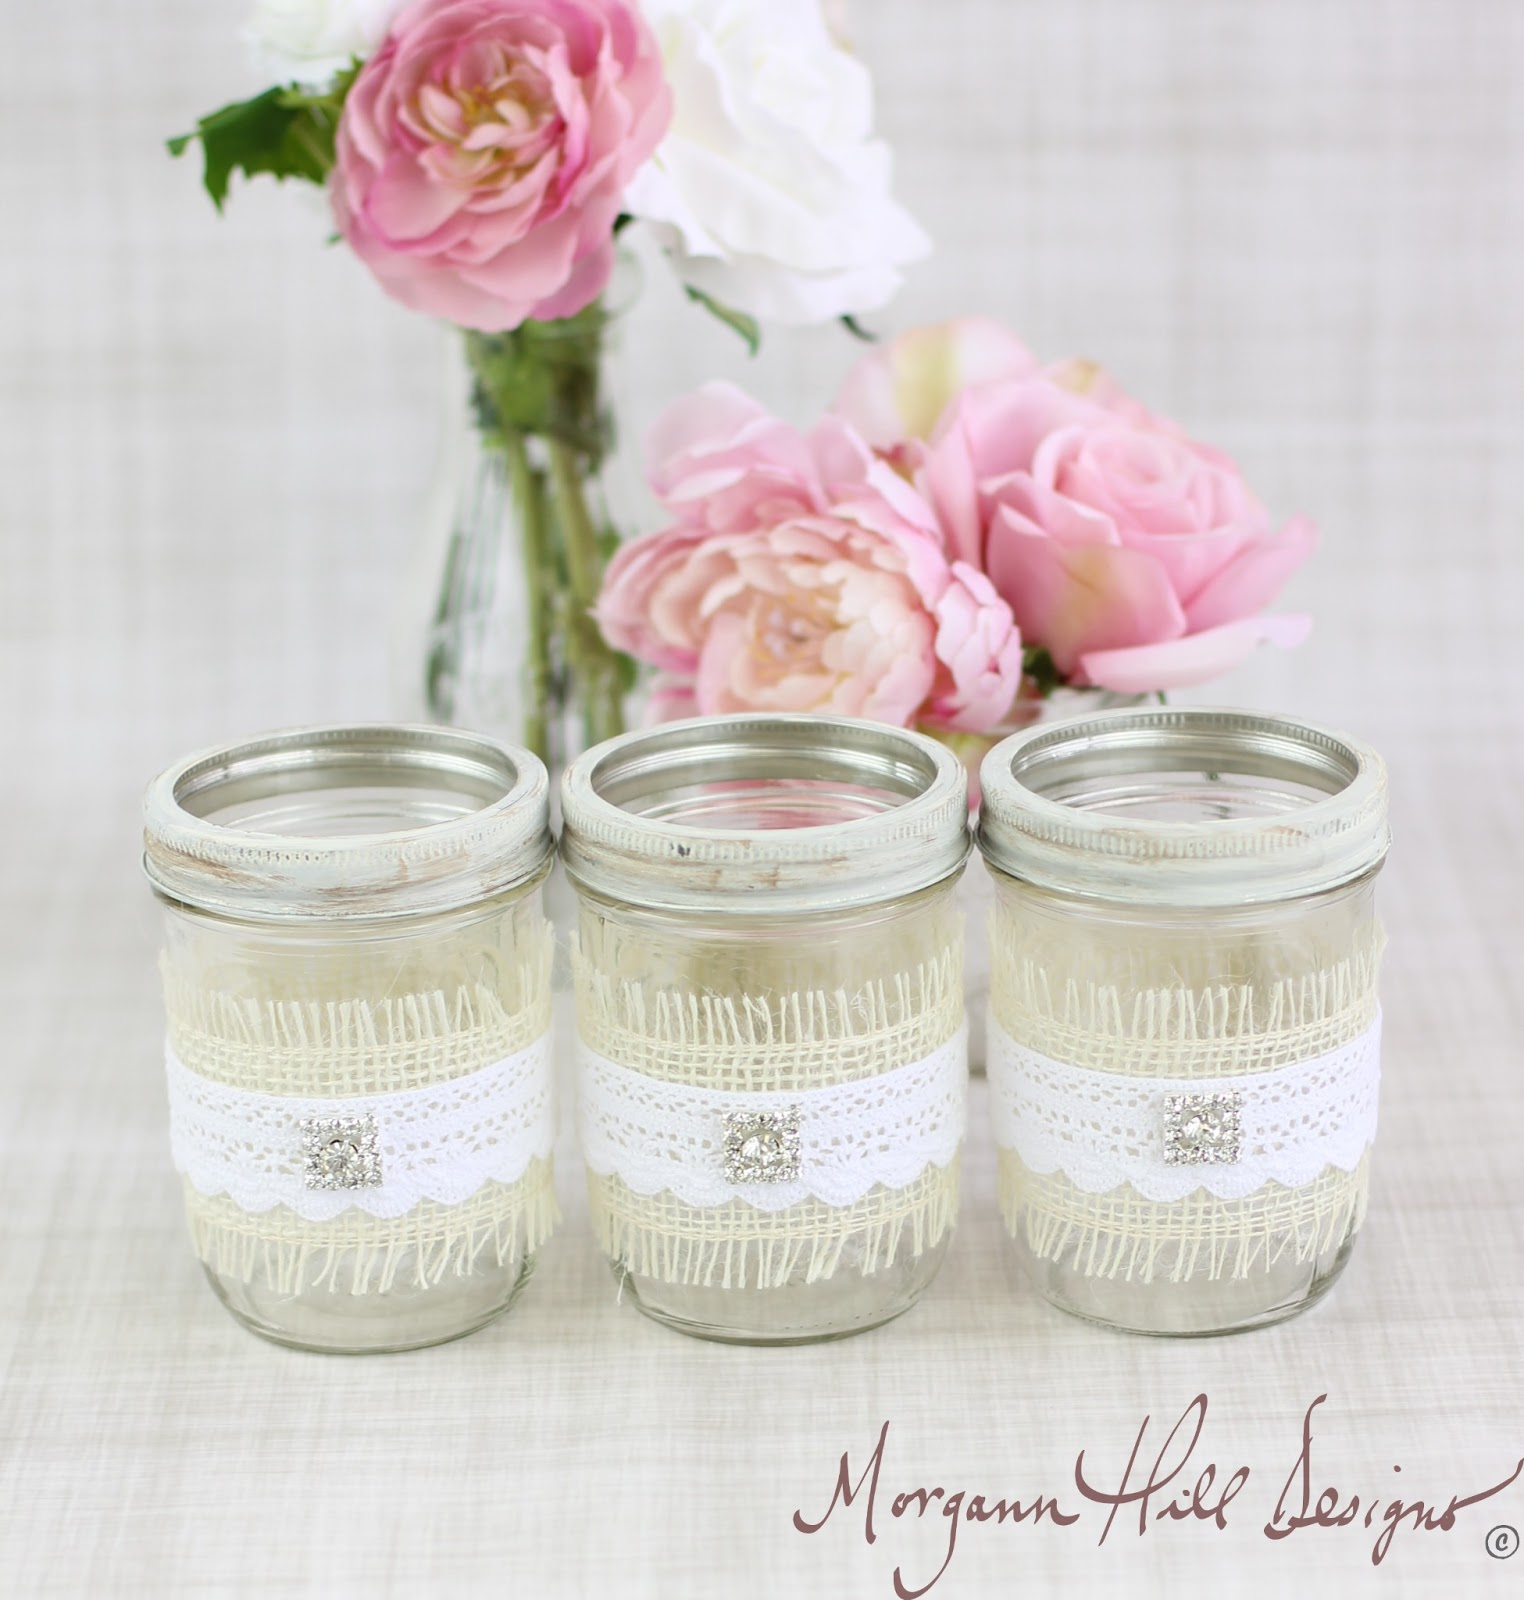 Mason Jar Ideas For Weddings: Morgann Hill Designs: Mason Jar Wedding Centerpieces Vases